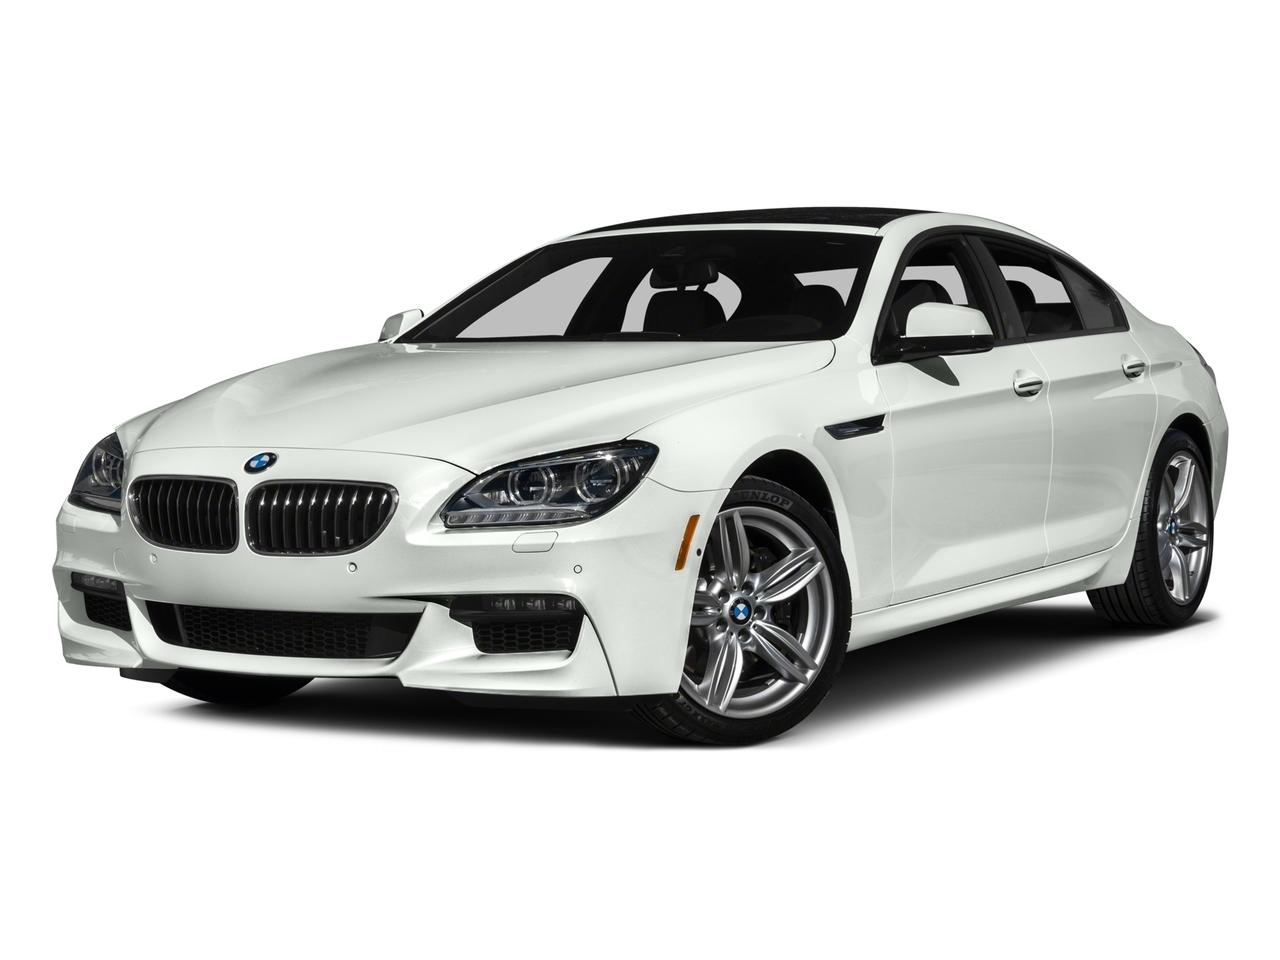 2015 BMW 650i Vehicle Photo in Broussard, LA 70518